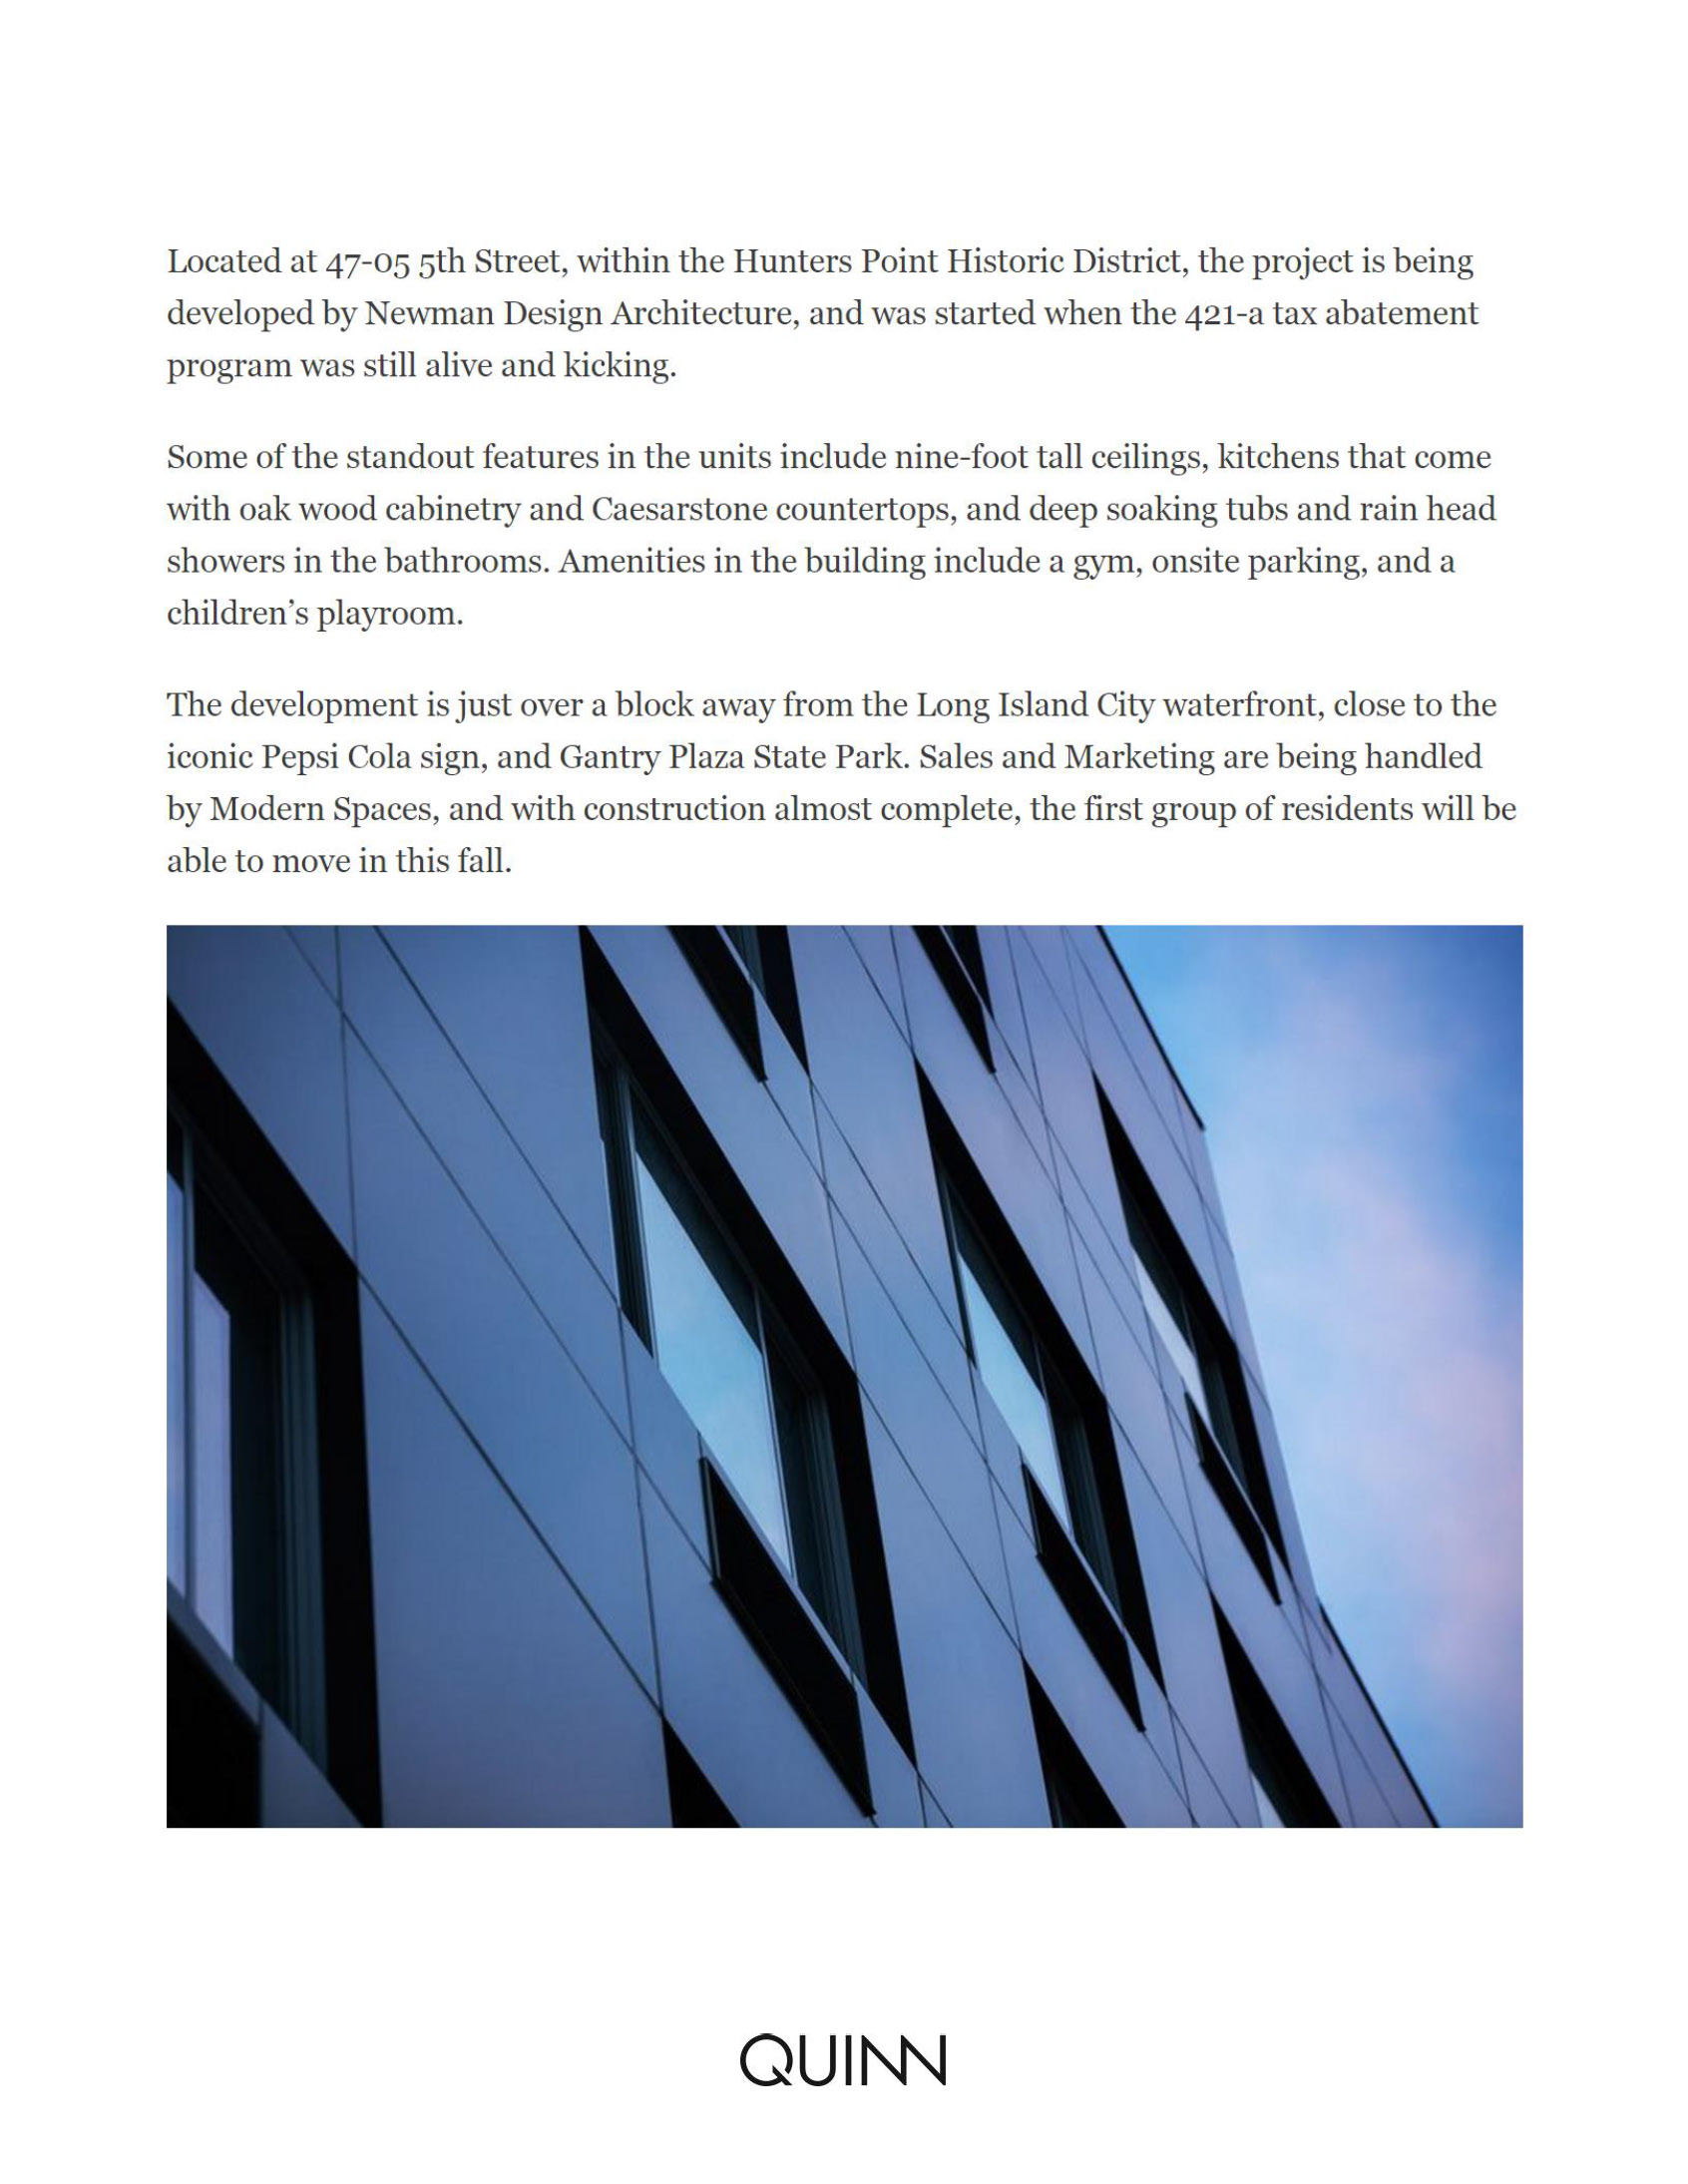 Curbed New York - Condos close to the Long Island City waterfront launch..._Page_2